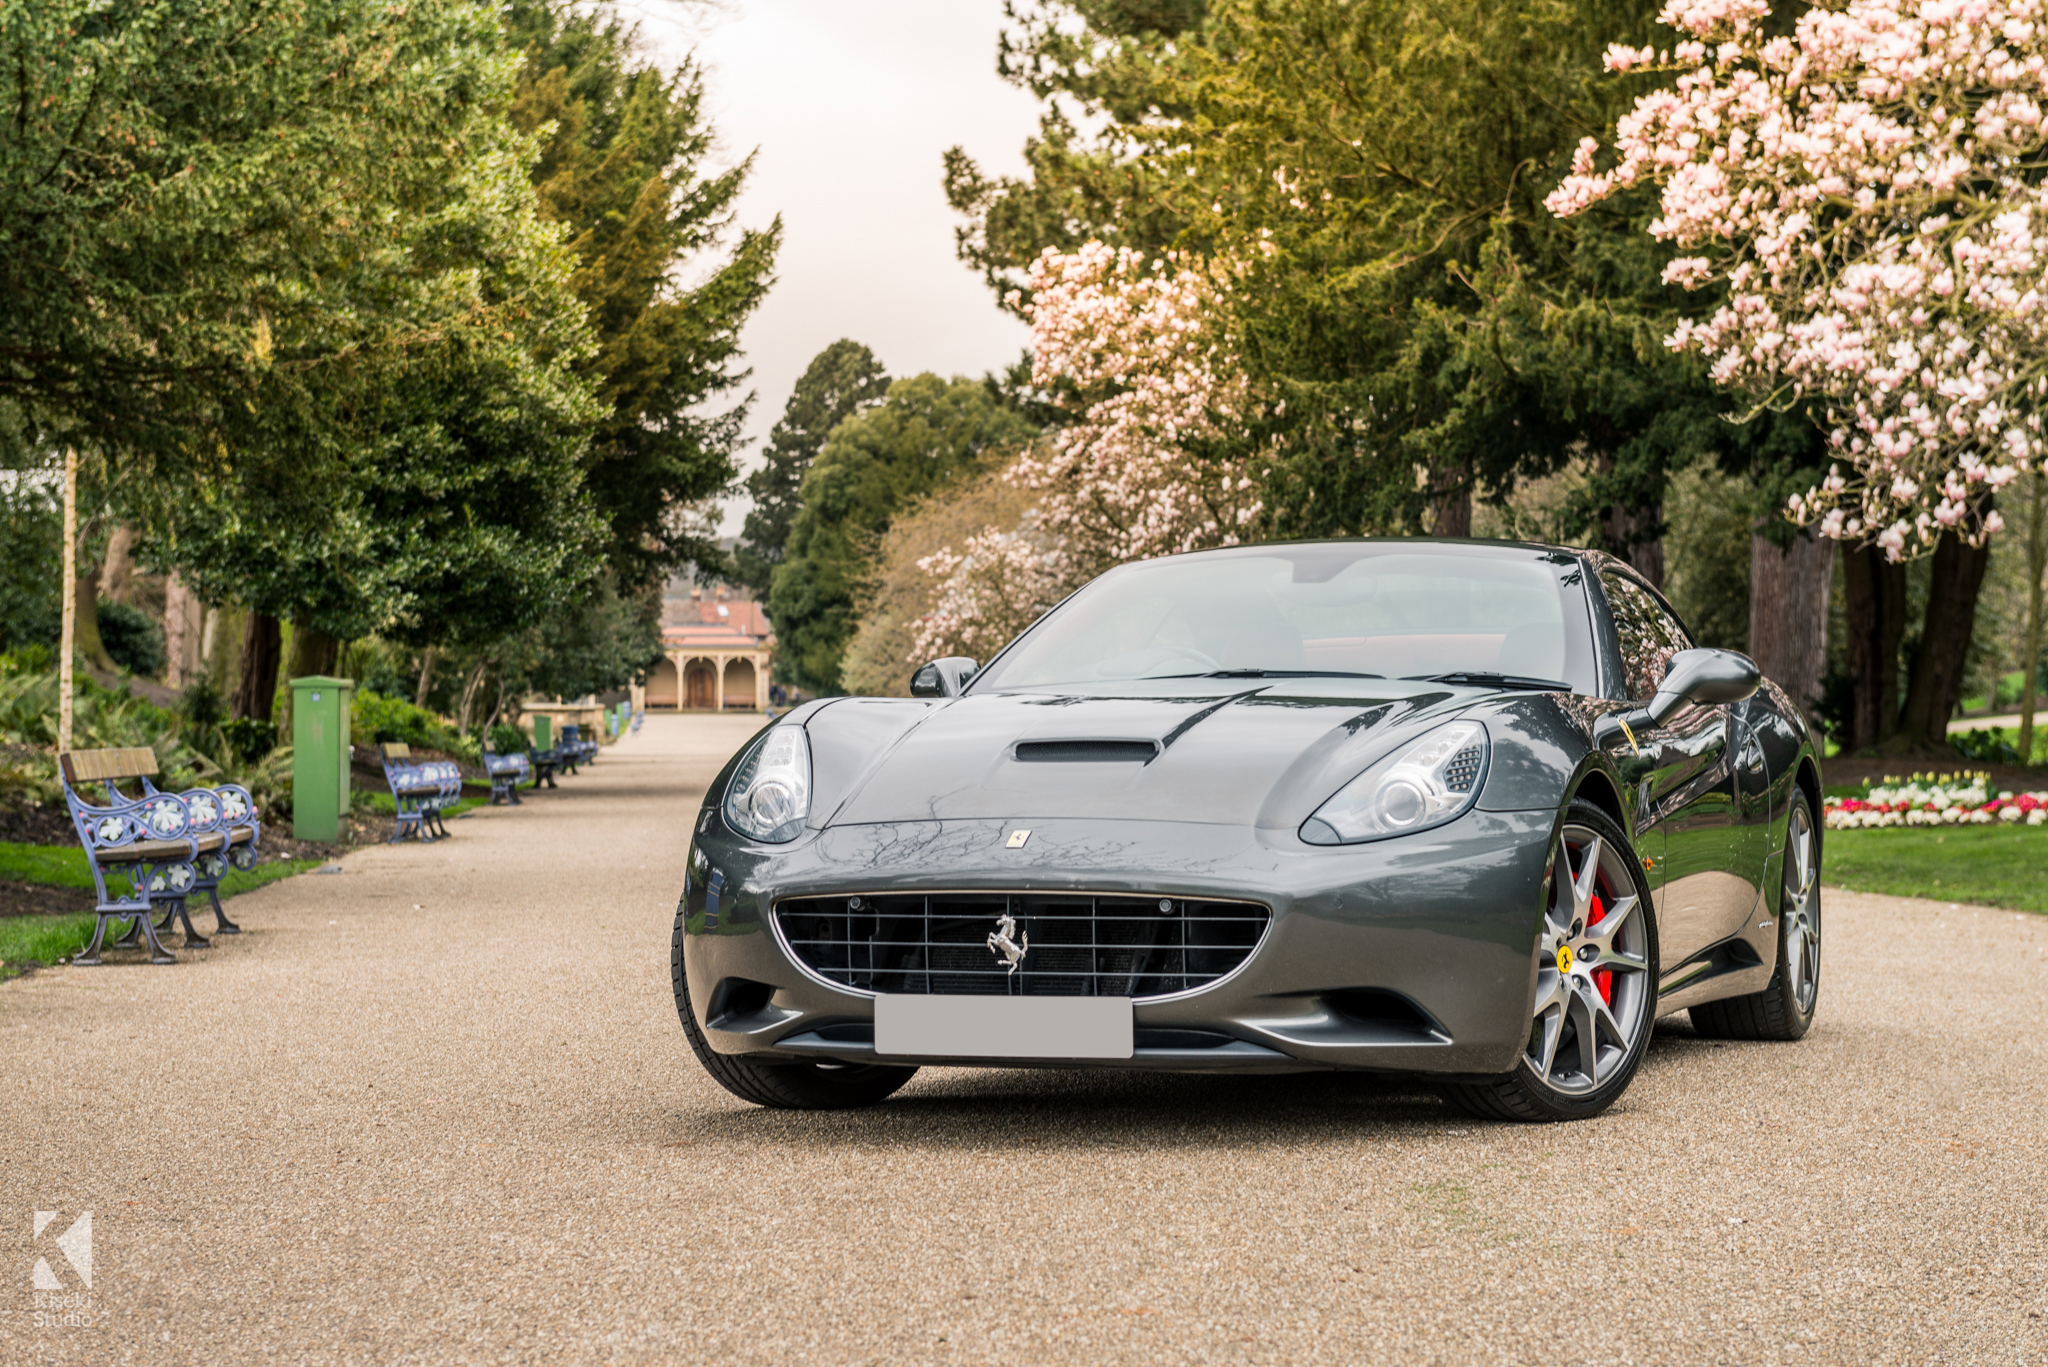 Grey ferrari california